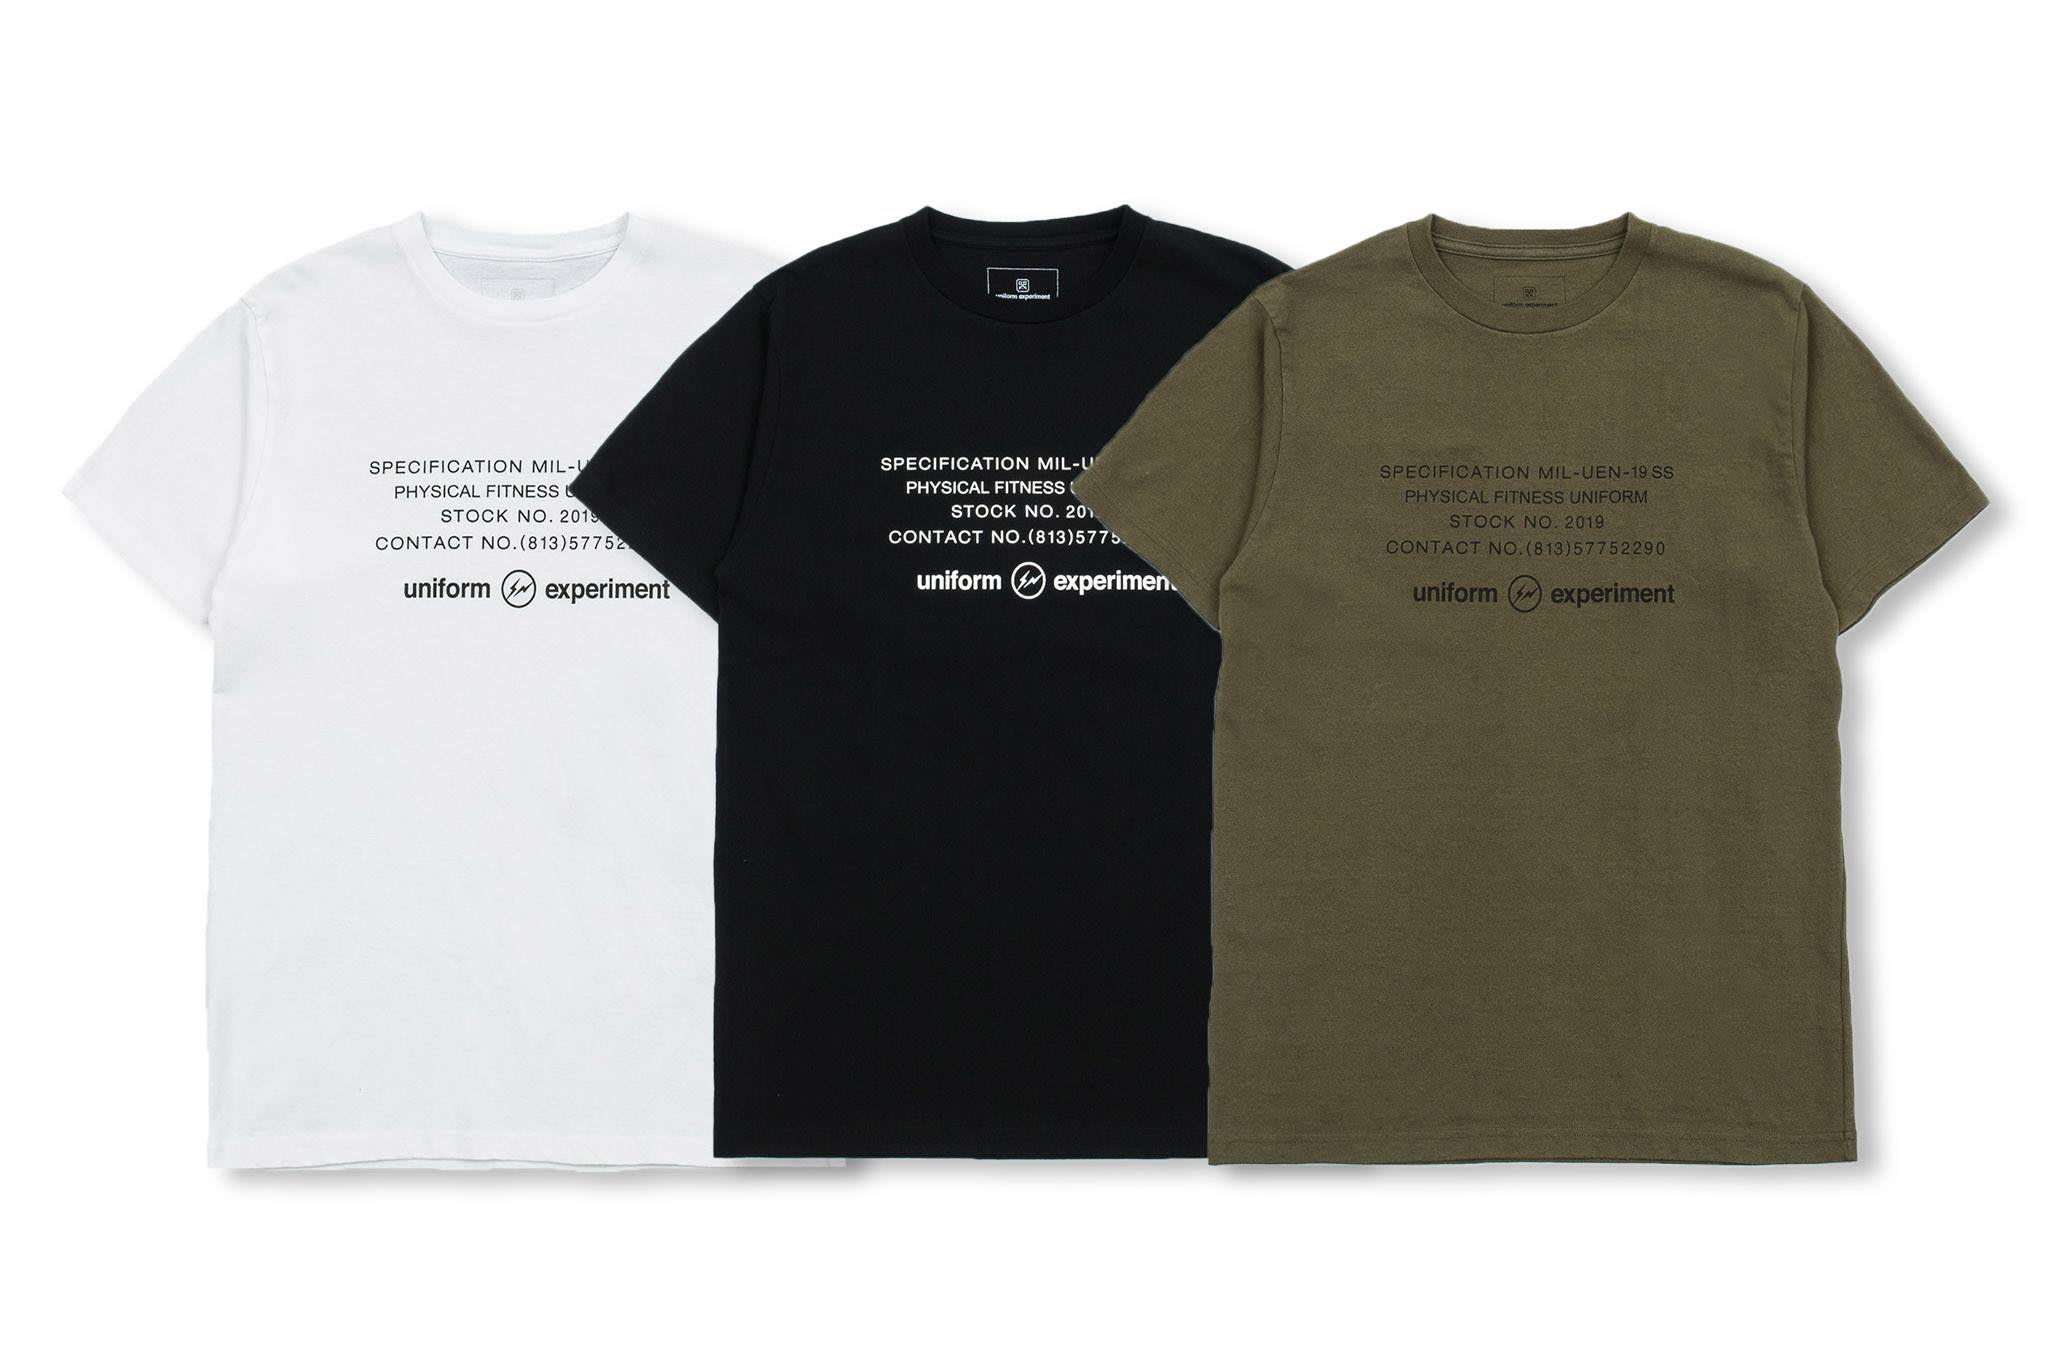 uniform experiment SS19 UEN PHYSICAL FITNESS TEE 短T 三色